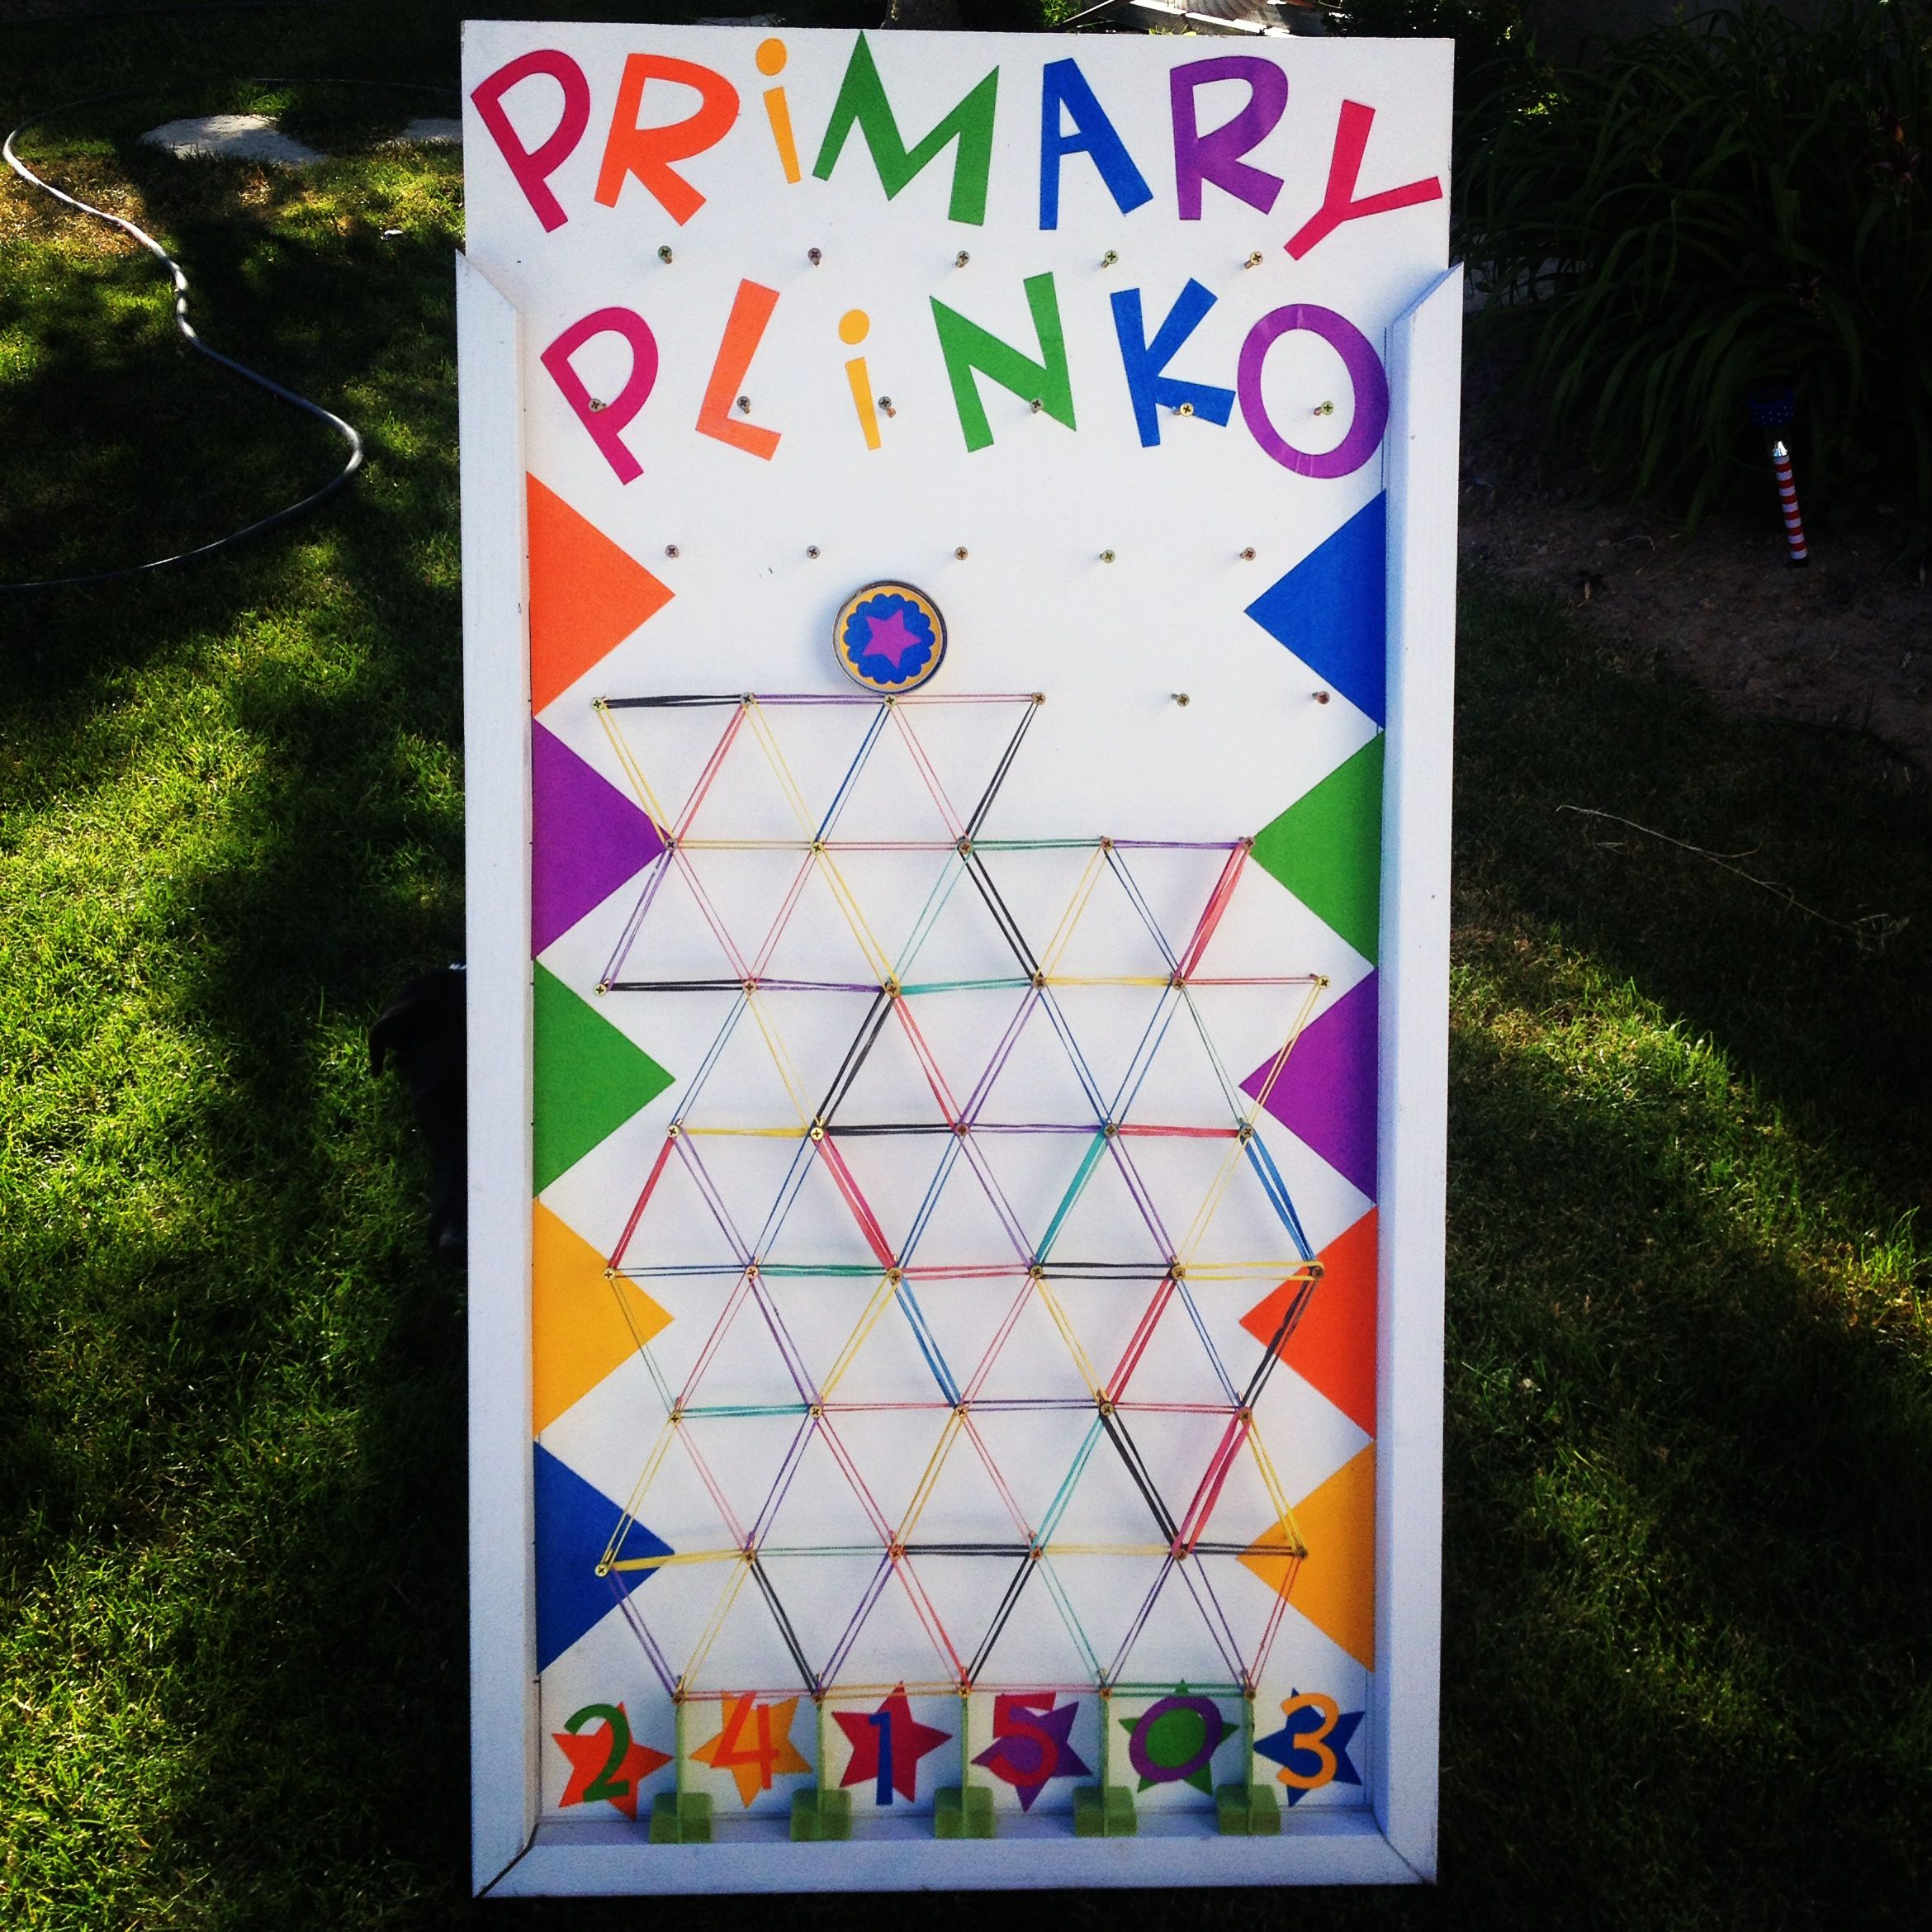 Diy plinko game 4x2 this one is for music time in primary diy plinko game 4x2 this one is for music time in primary childrens sunday school puck slides down under the bands where it lands depicts the song solutioingenieria Choice Image